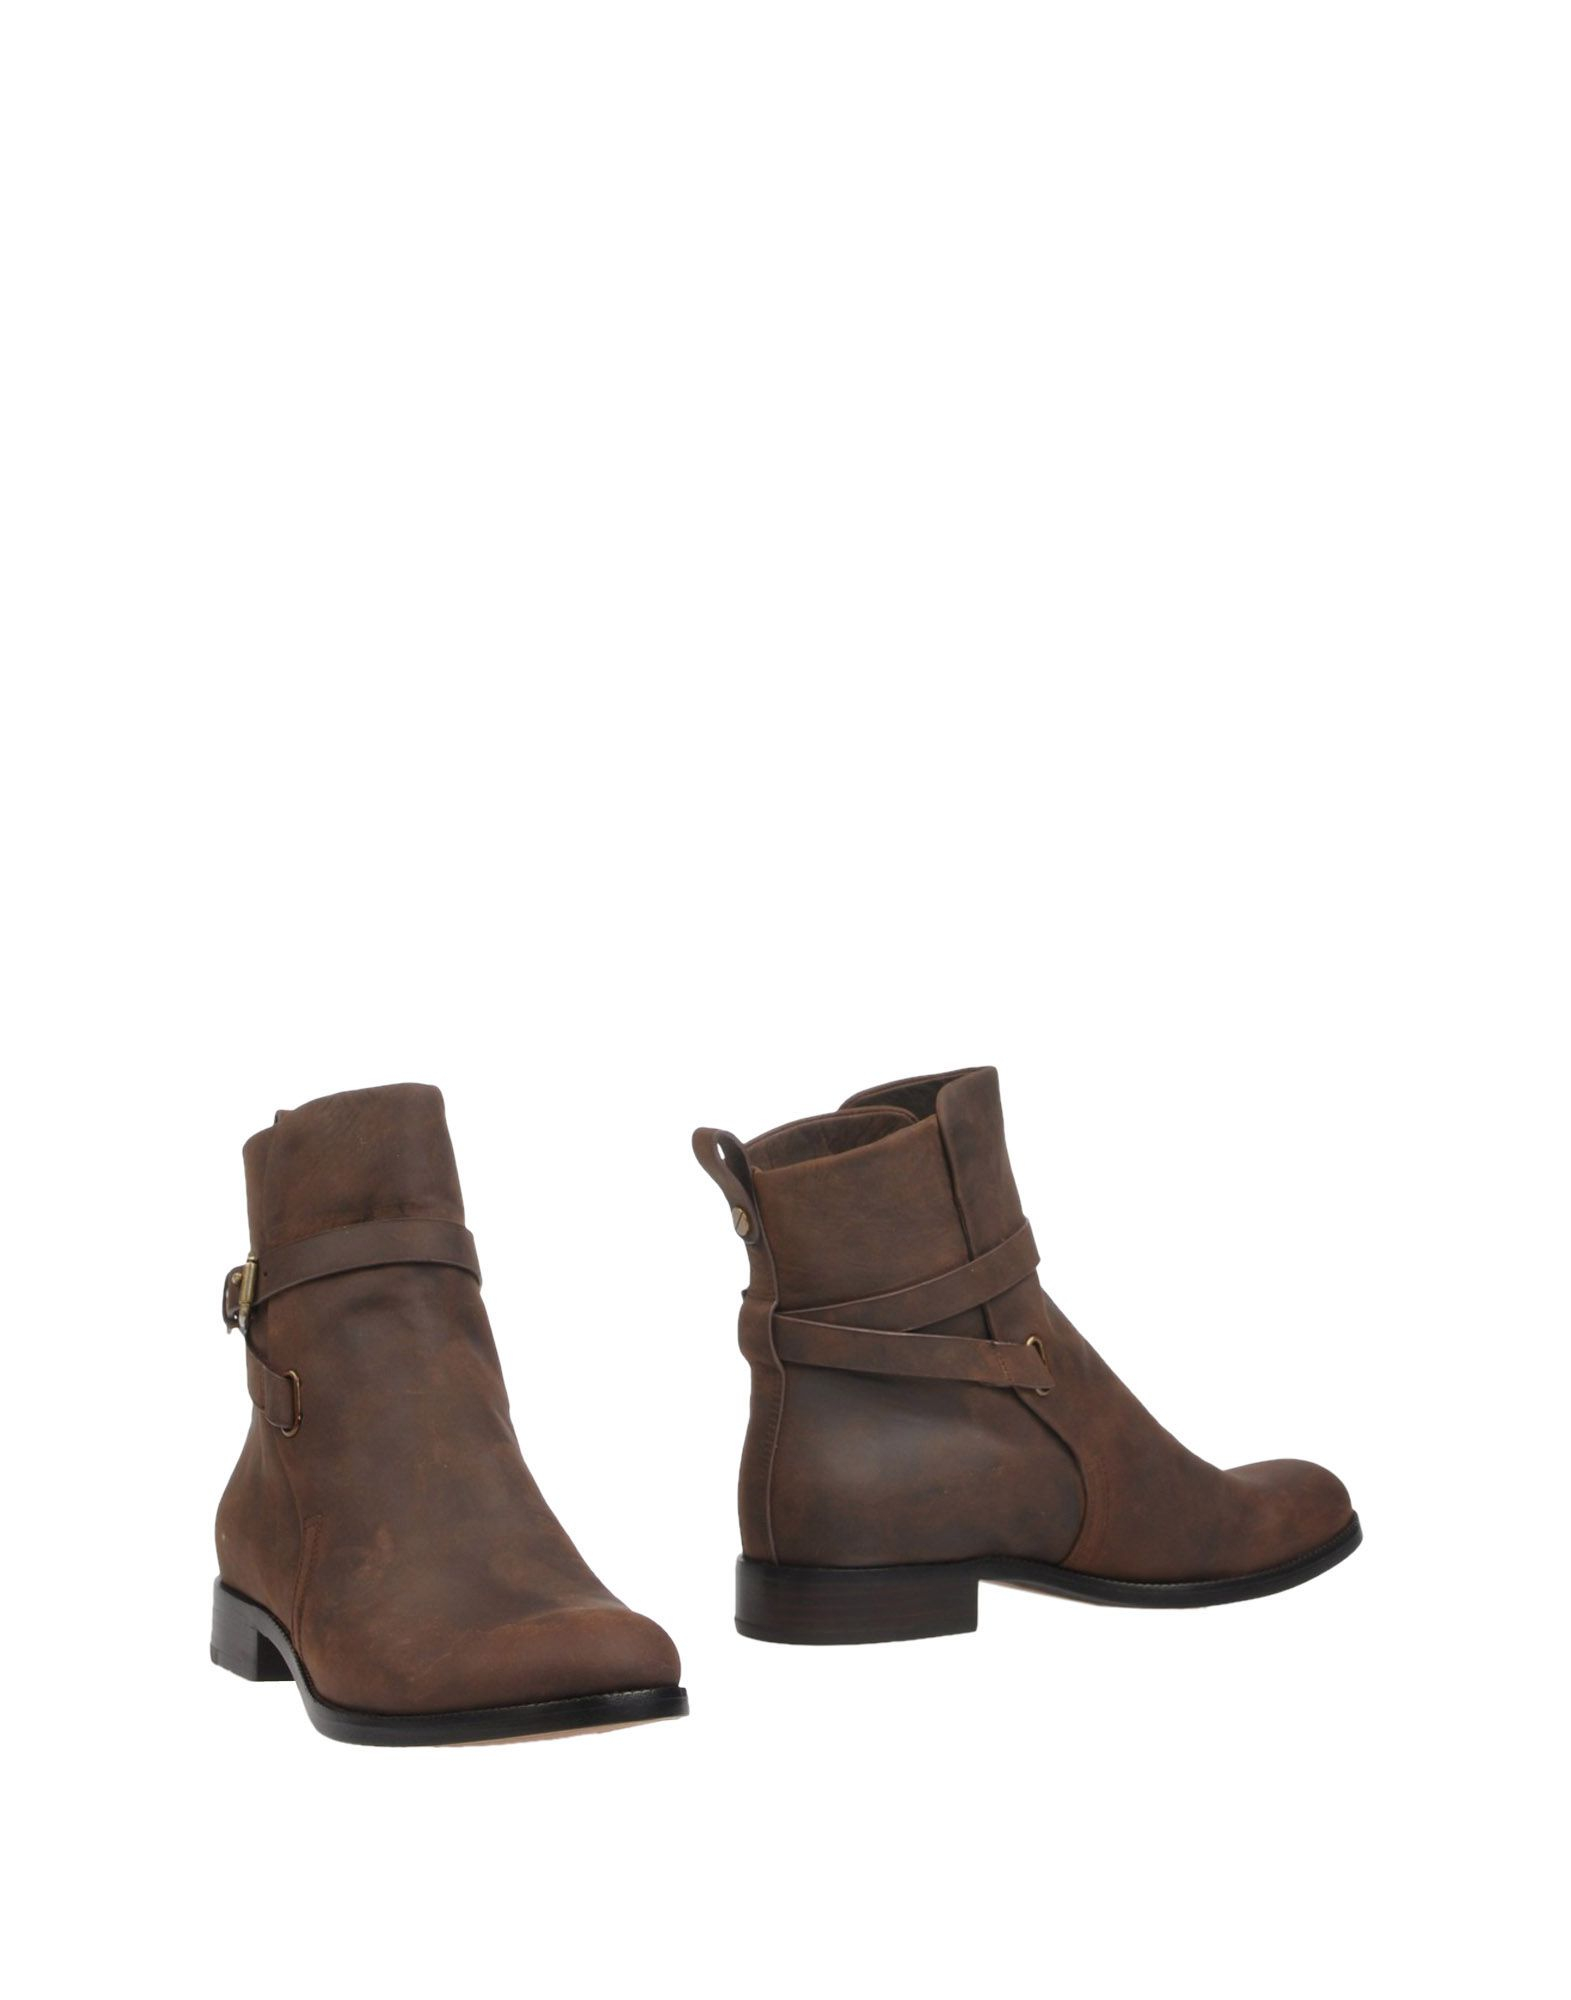 kors by michael kors ankle boots in brown lyst